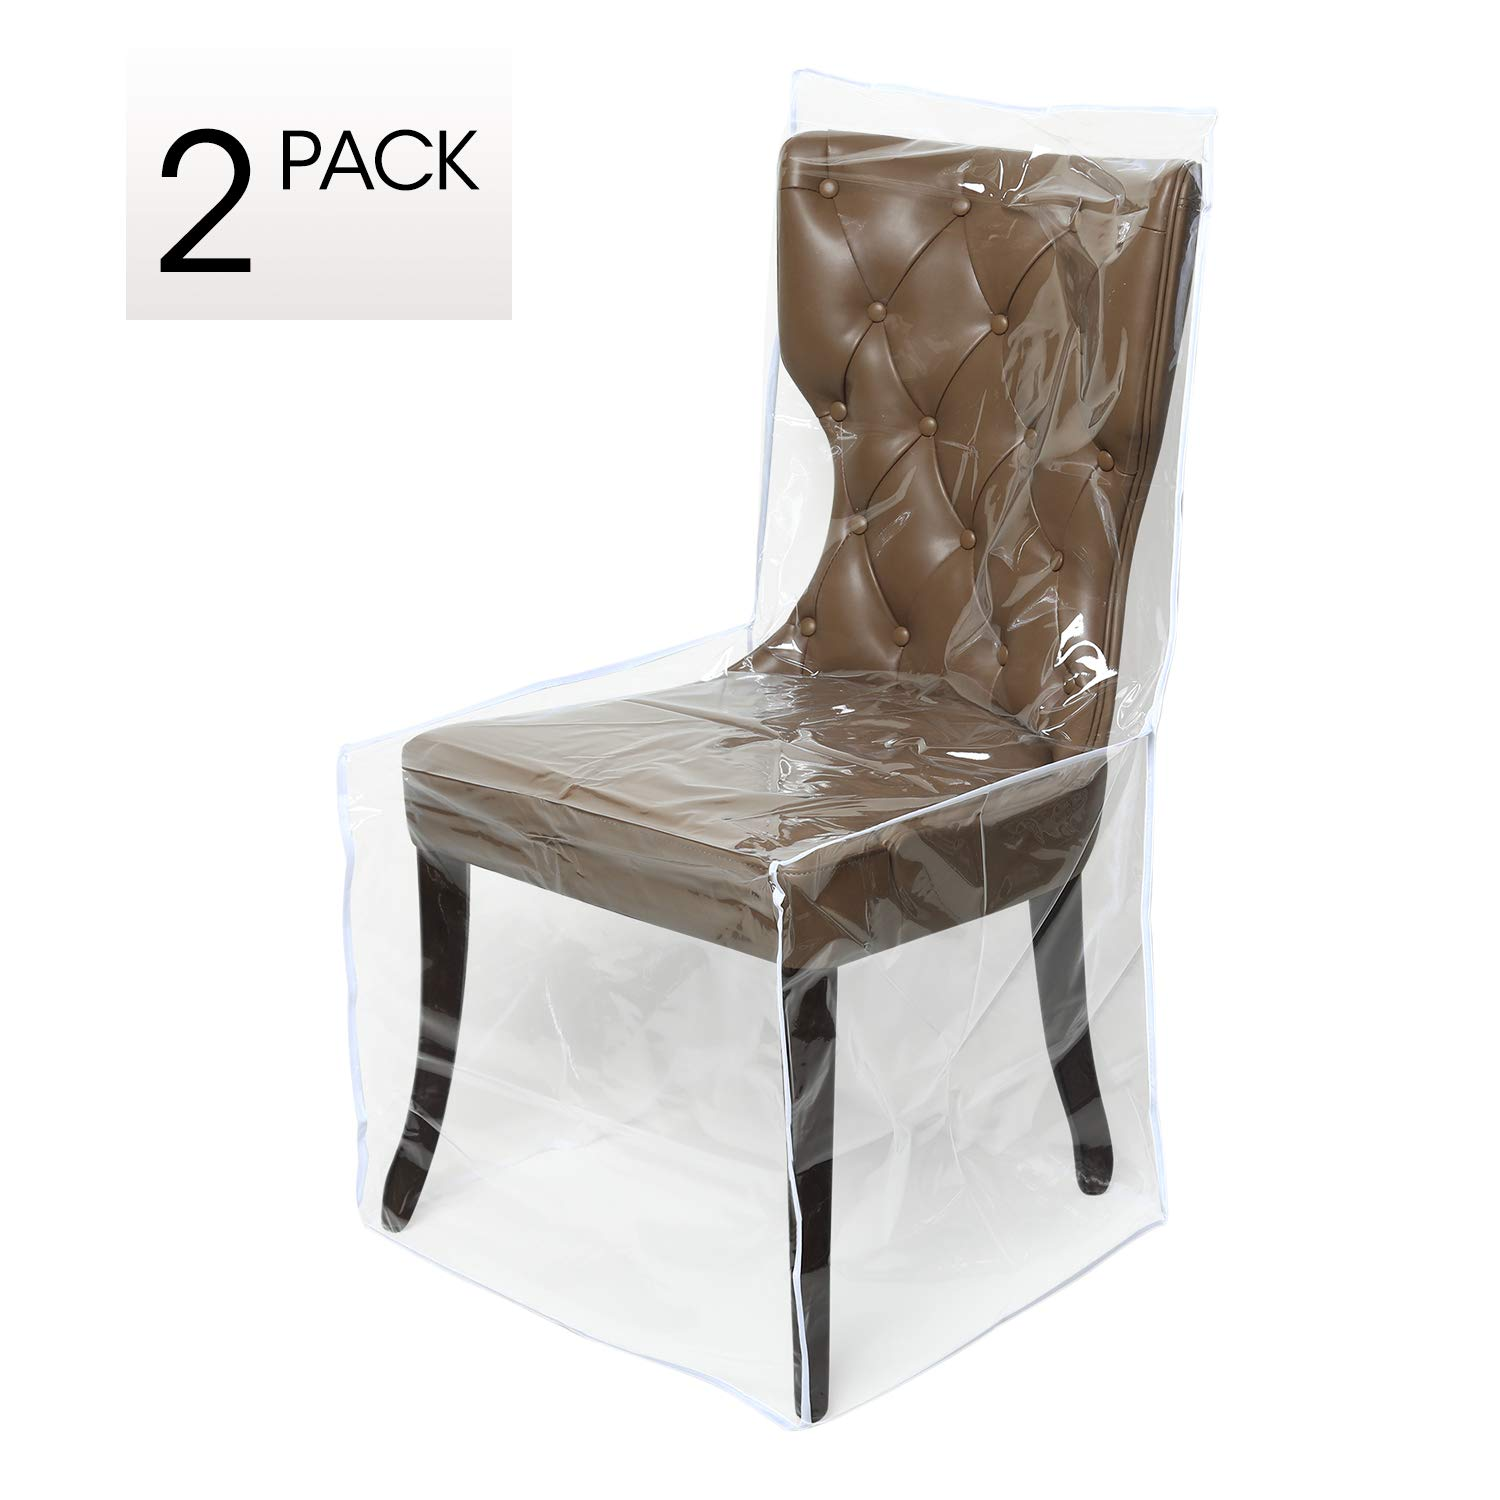 Zipcase 2 Packs All Cover in Plastic Dinning Chair Covers - Heavy Duty Clear Chair Protectors Keep Your Dinning Chair Away from Water Dust Paws and Claws